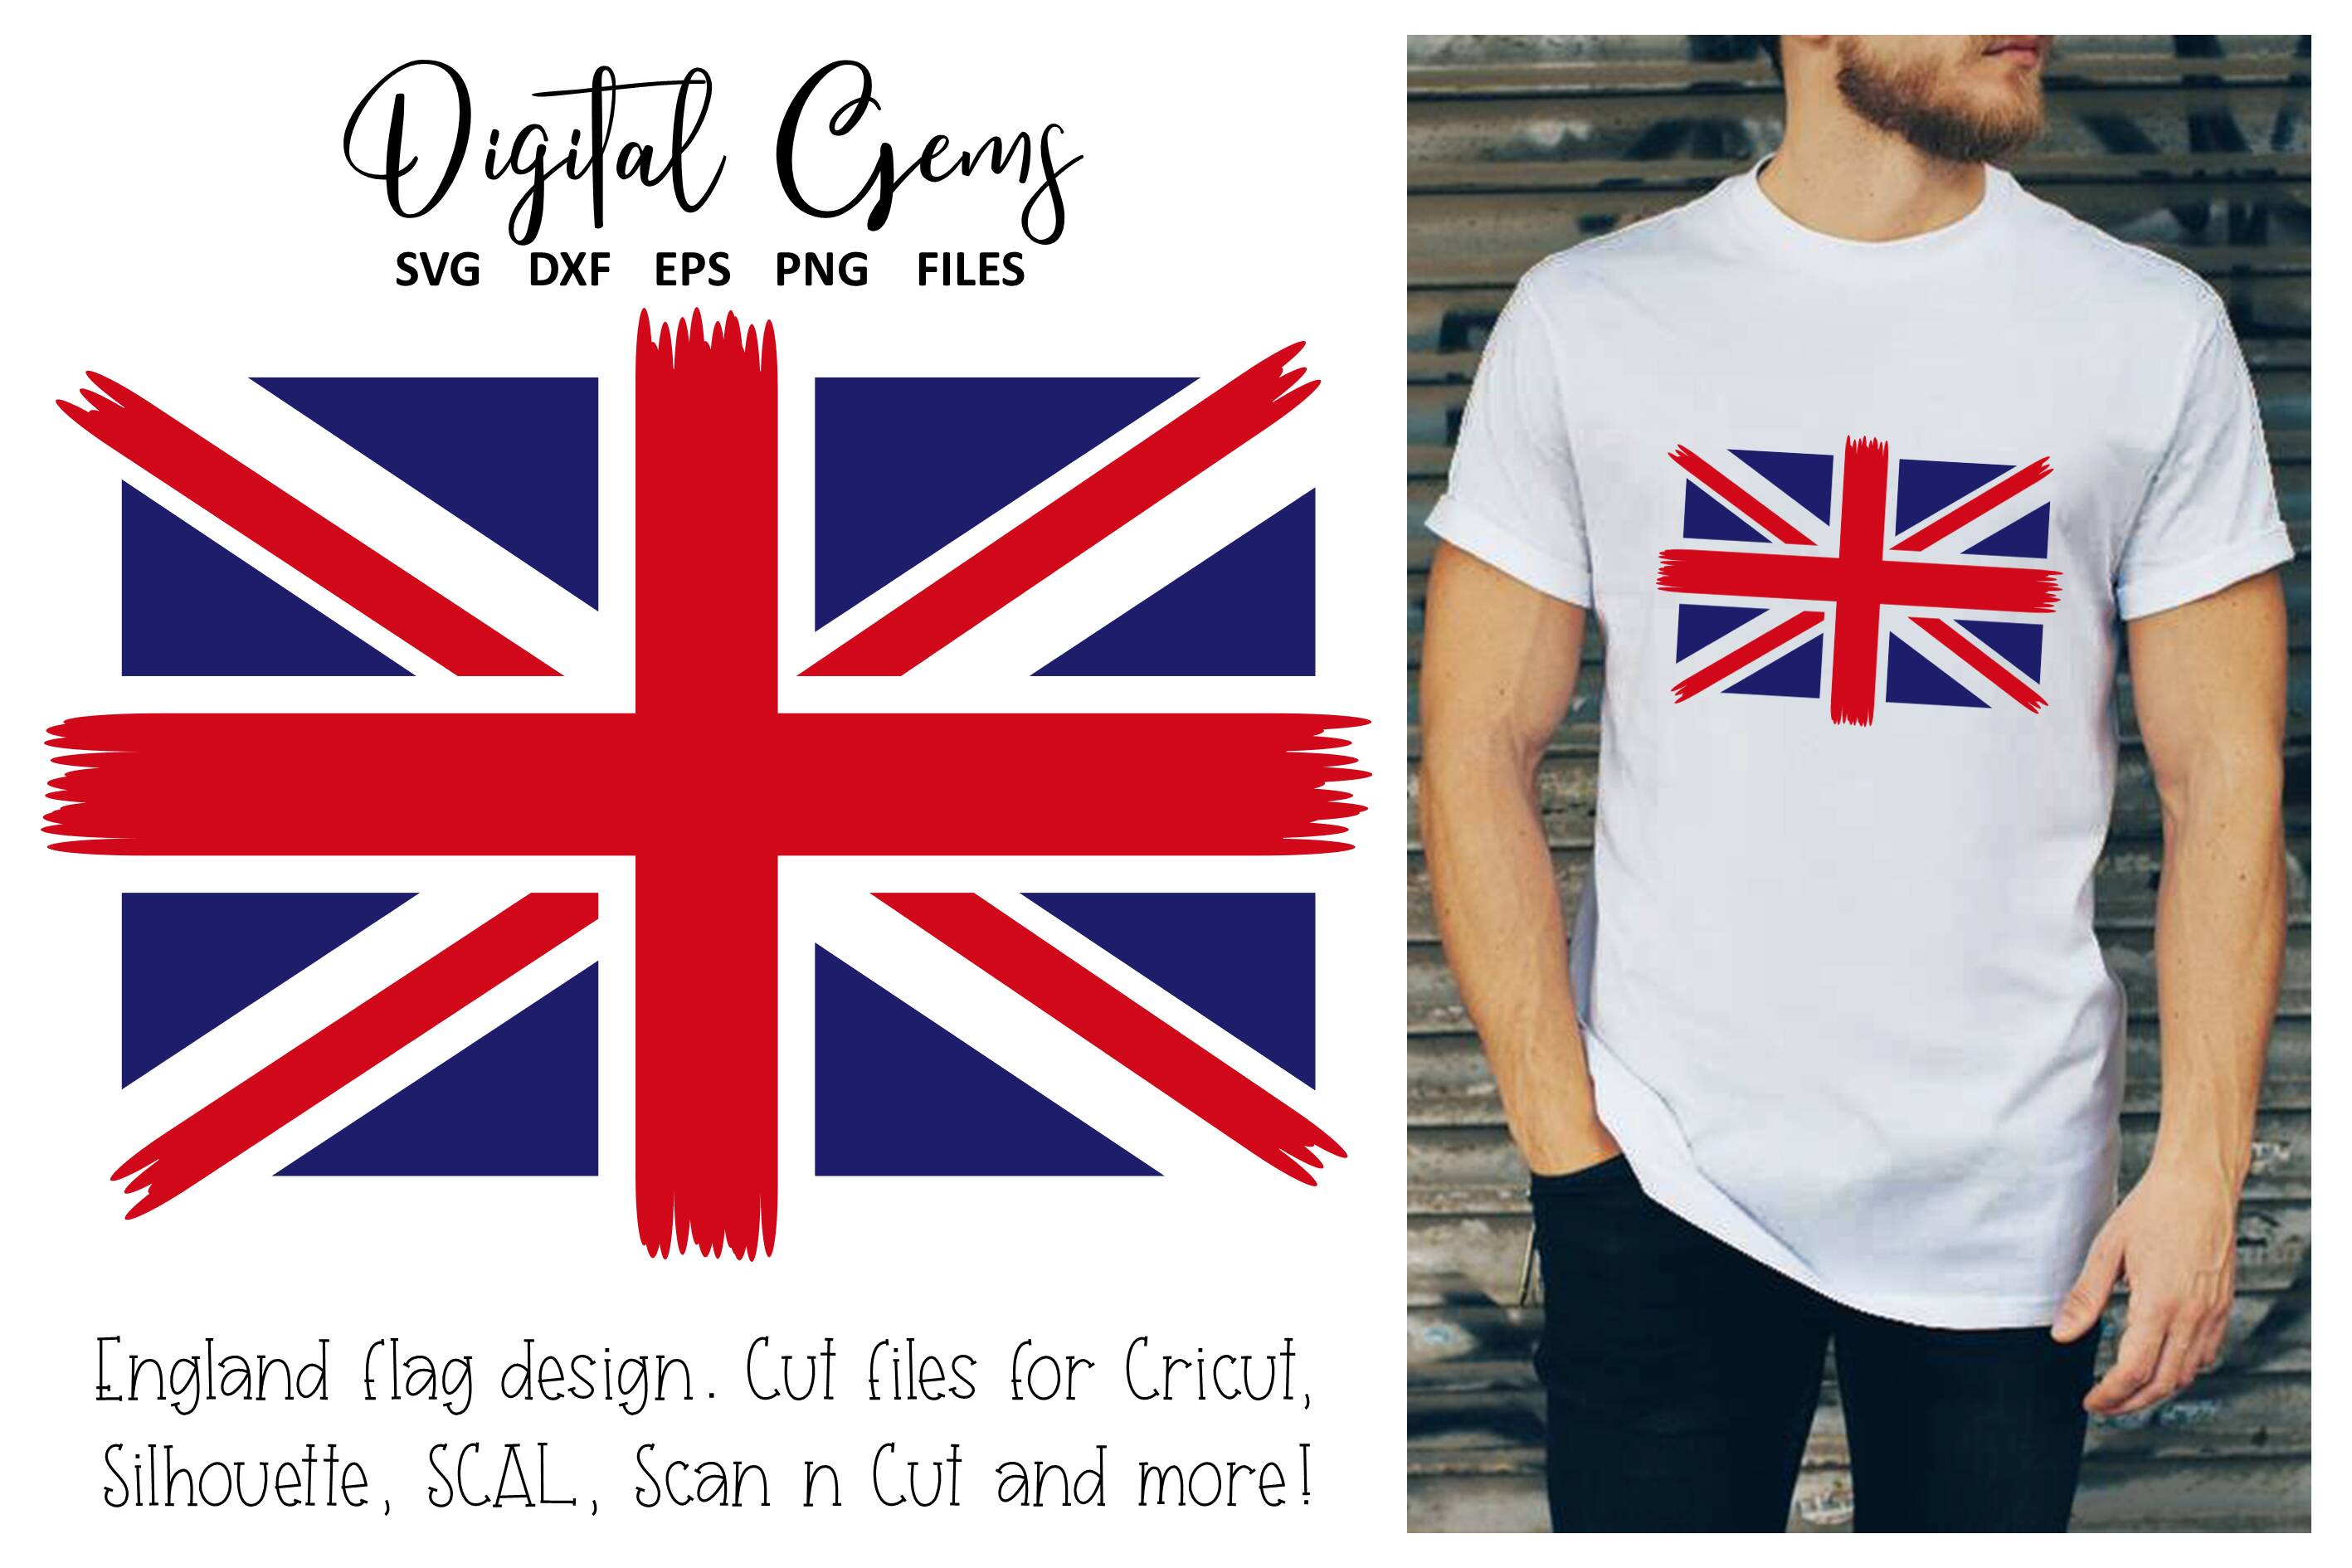 Download Free Union Jack Flag Design Graphic By Digital Gems Creative Fabrica SVG Cut Files